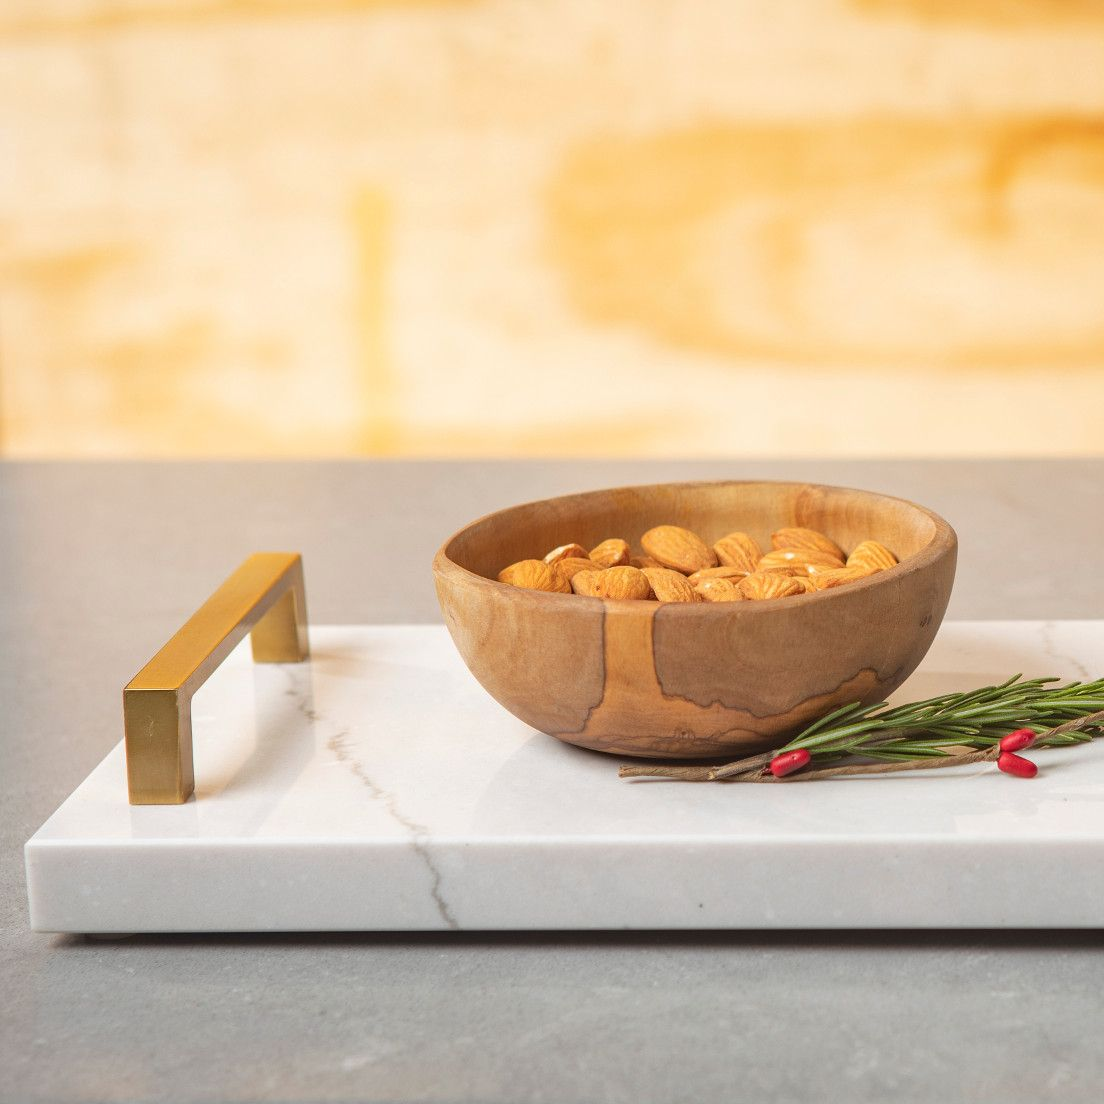 Cambria tray with handles with almonds in a wooden bowl on top.